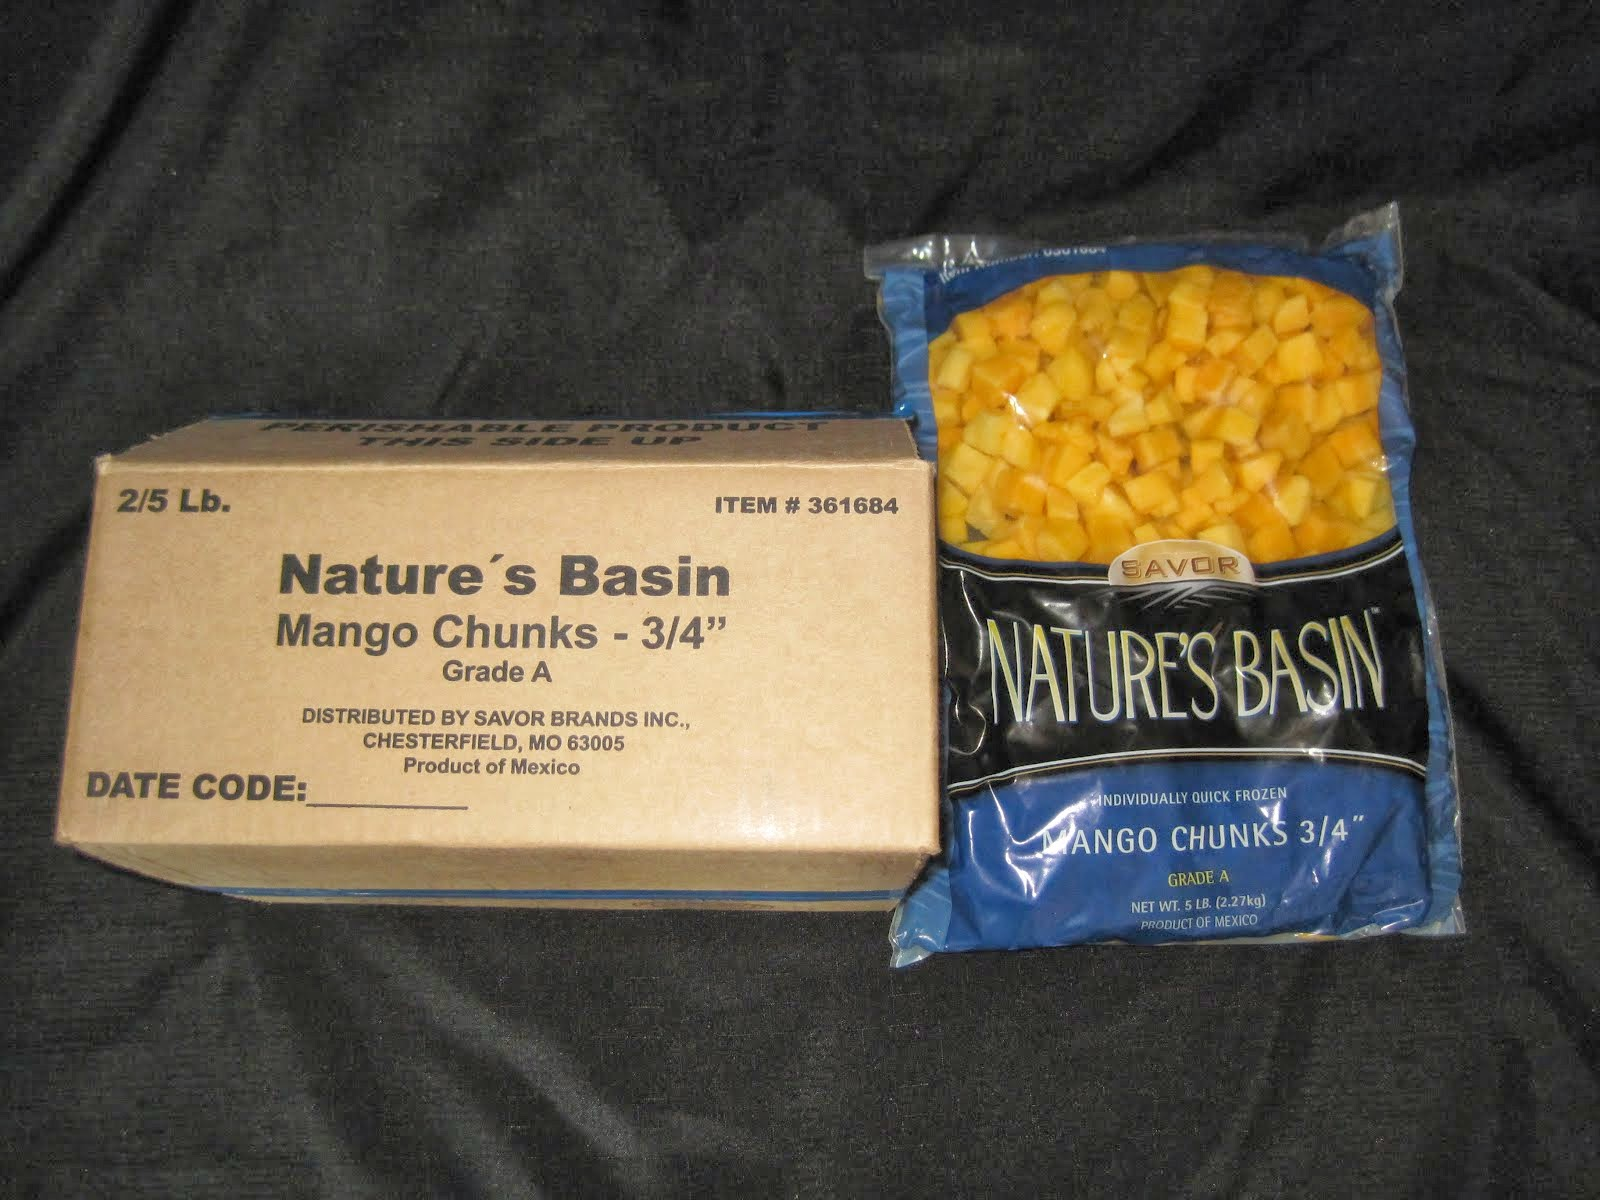 Mango Chunks 2/5 lb bags - Item # 25145